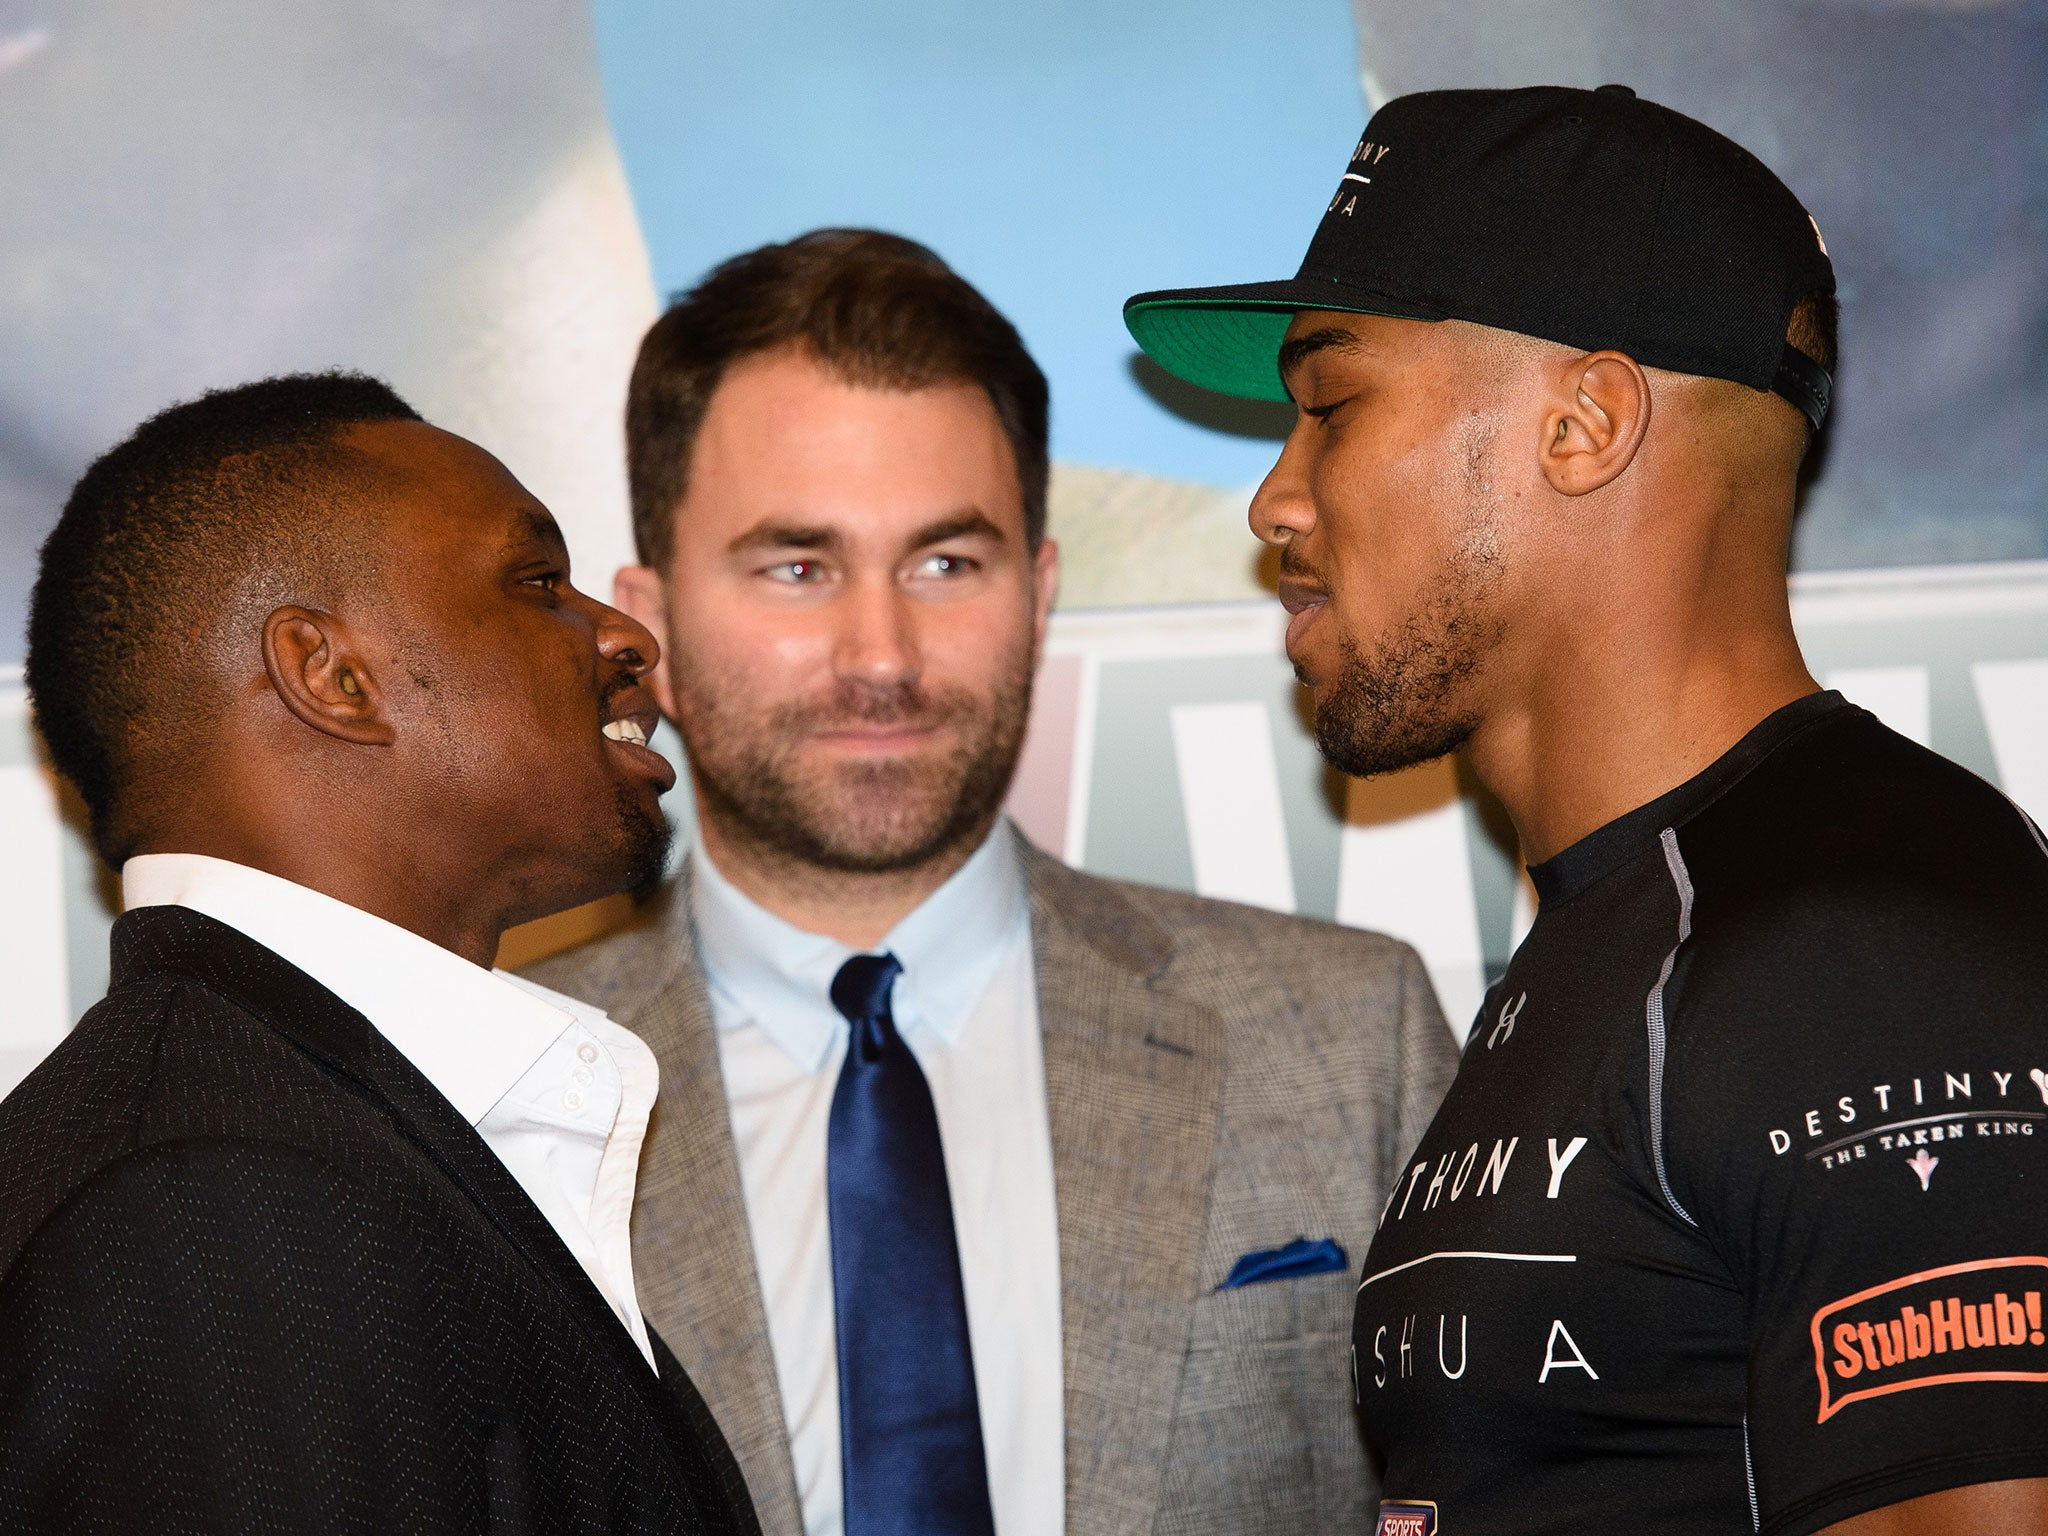 Joe Calzaghe Packs PDA Glam Girlfriend Lucy Griffiths Smooch Storm Red Carpet Screening Film Mr Calzaghe together with 22641764 likewise 477705 Bernard Hopkins Joe Smith Jr Weigh Results moreover Mr Magic No Limit Dies In A Car Accident Along With also The Latest Polls Open Alabama Senate Race. on roy jones jr wife